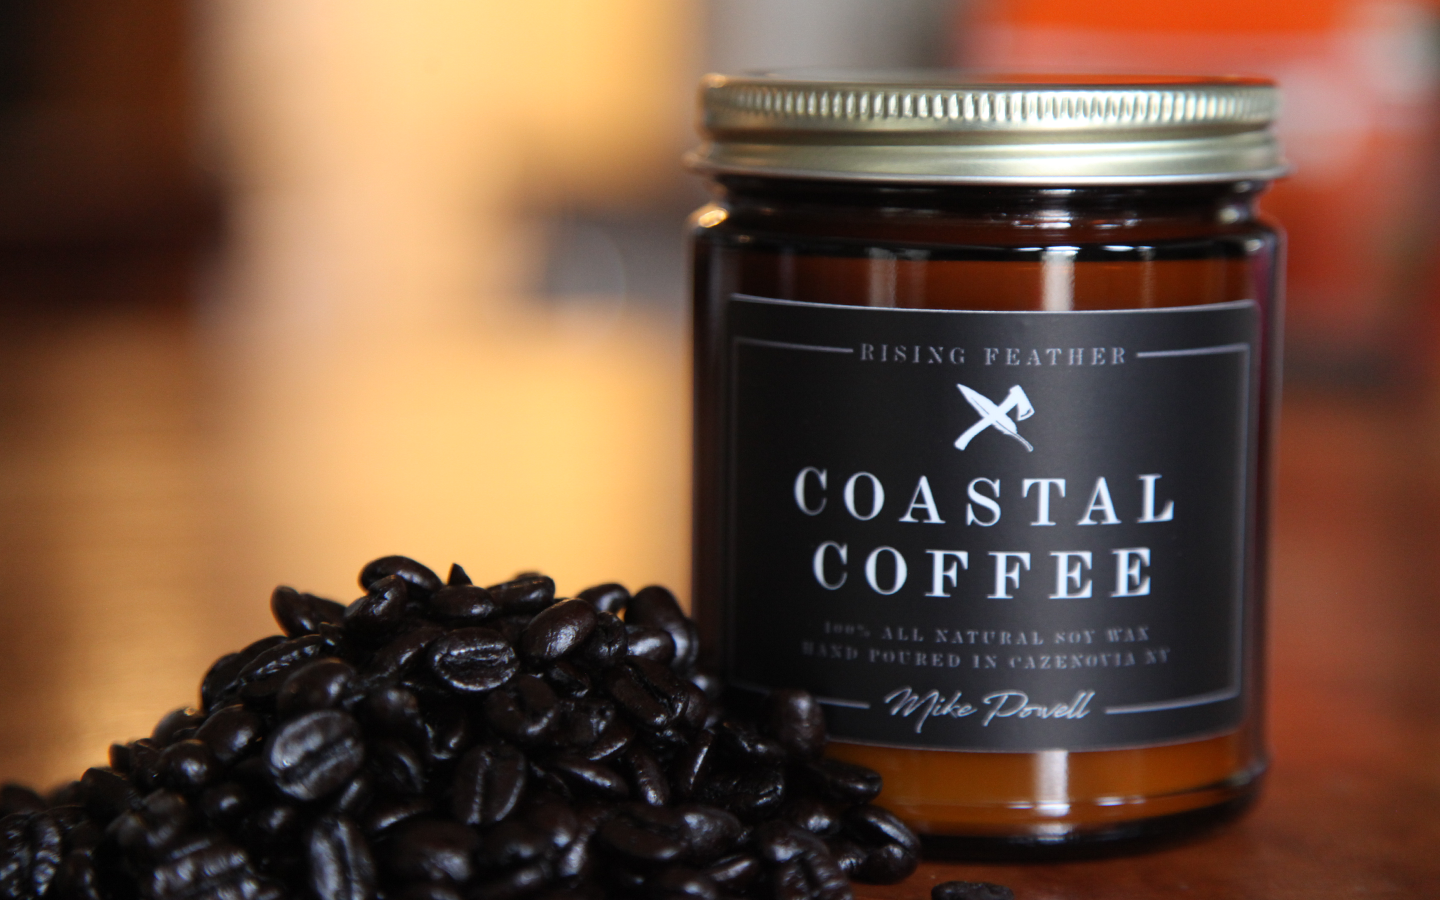 Coastal Coffee